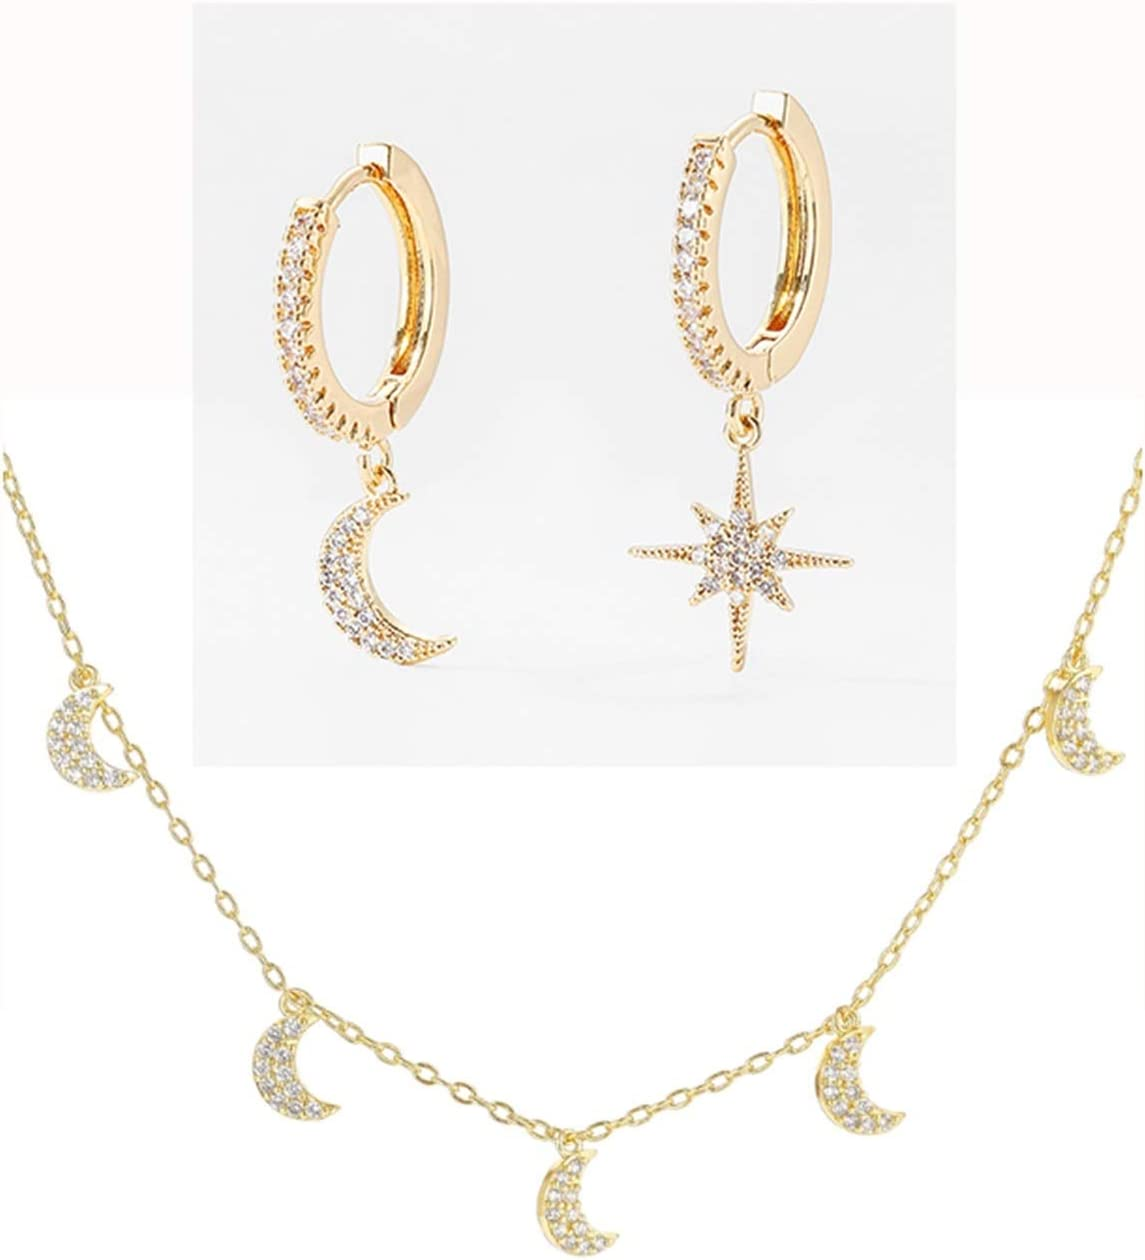 SFQRYP Long-awaited Cubic Zirconia Moon Star for Women Necklace Set OFFicial store Earrings